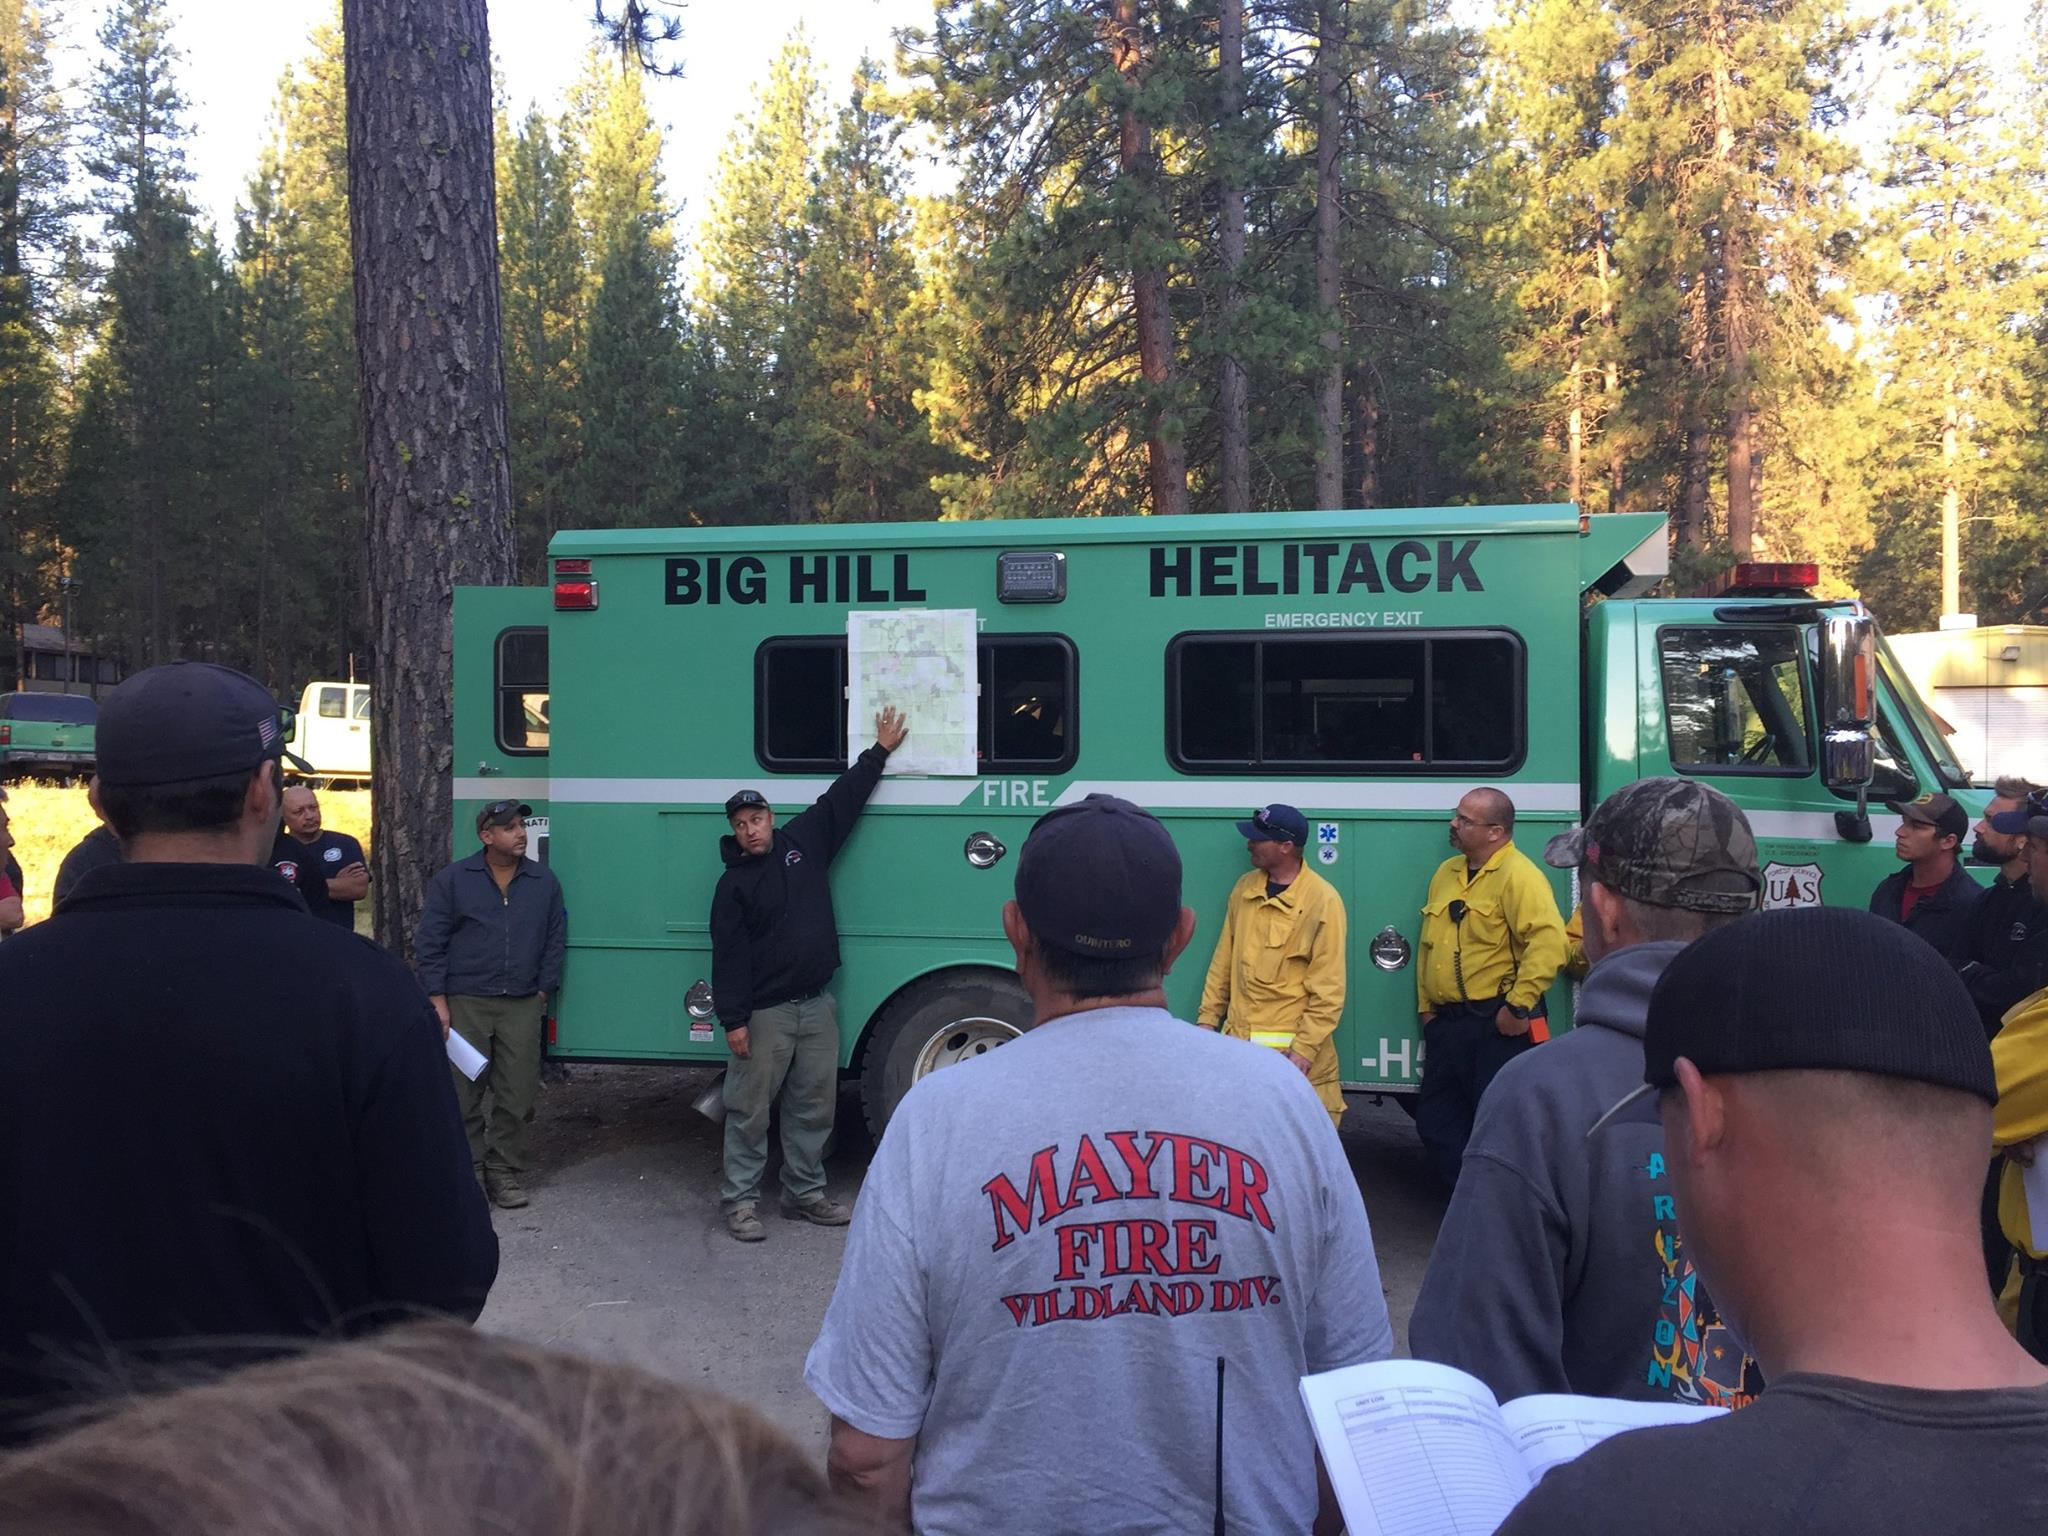 Steve Tolen, Operations Chief (hand on map) and Leon Jeffrey, Incident Commander (to left of Tolen) conducting morning briefing for firefighters. (Courtesy: U.S. Forest Service-Plumas National Forest)